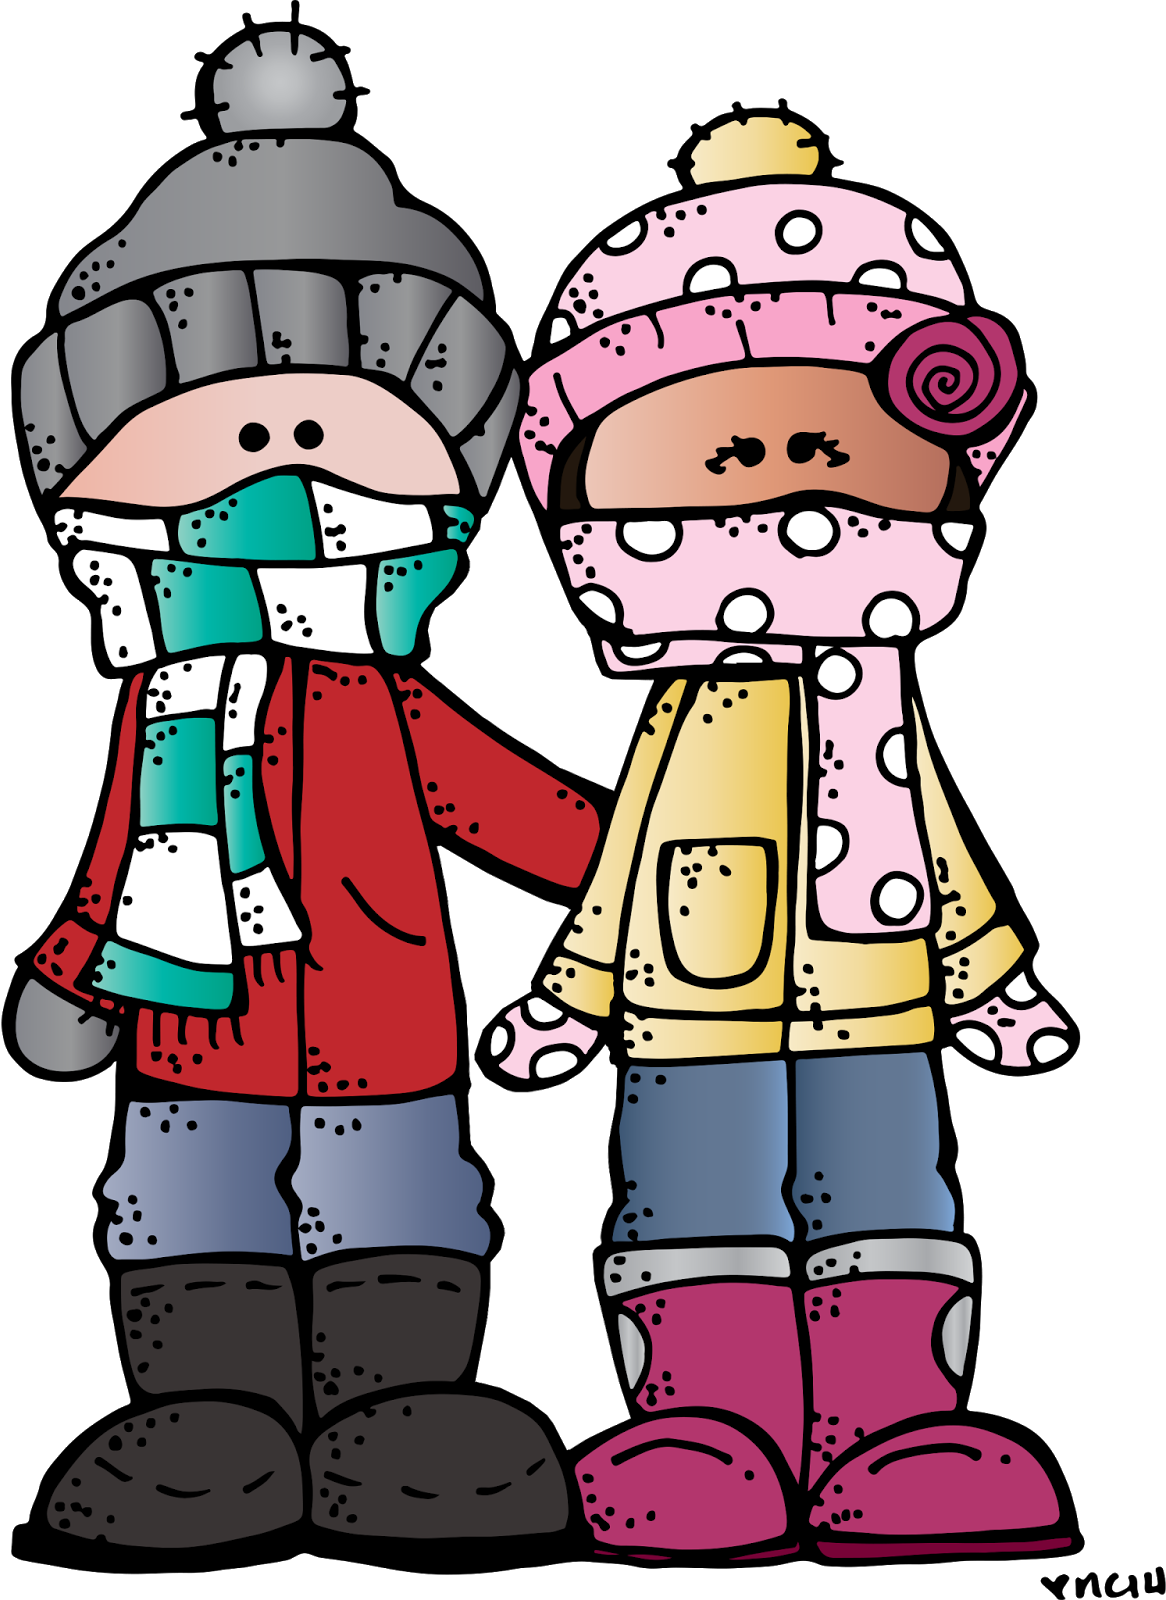 download Alien clipart melonheadz. Illustrating happy winter printables.